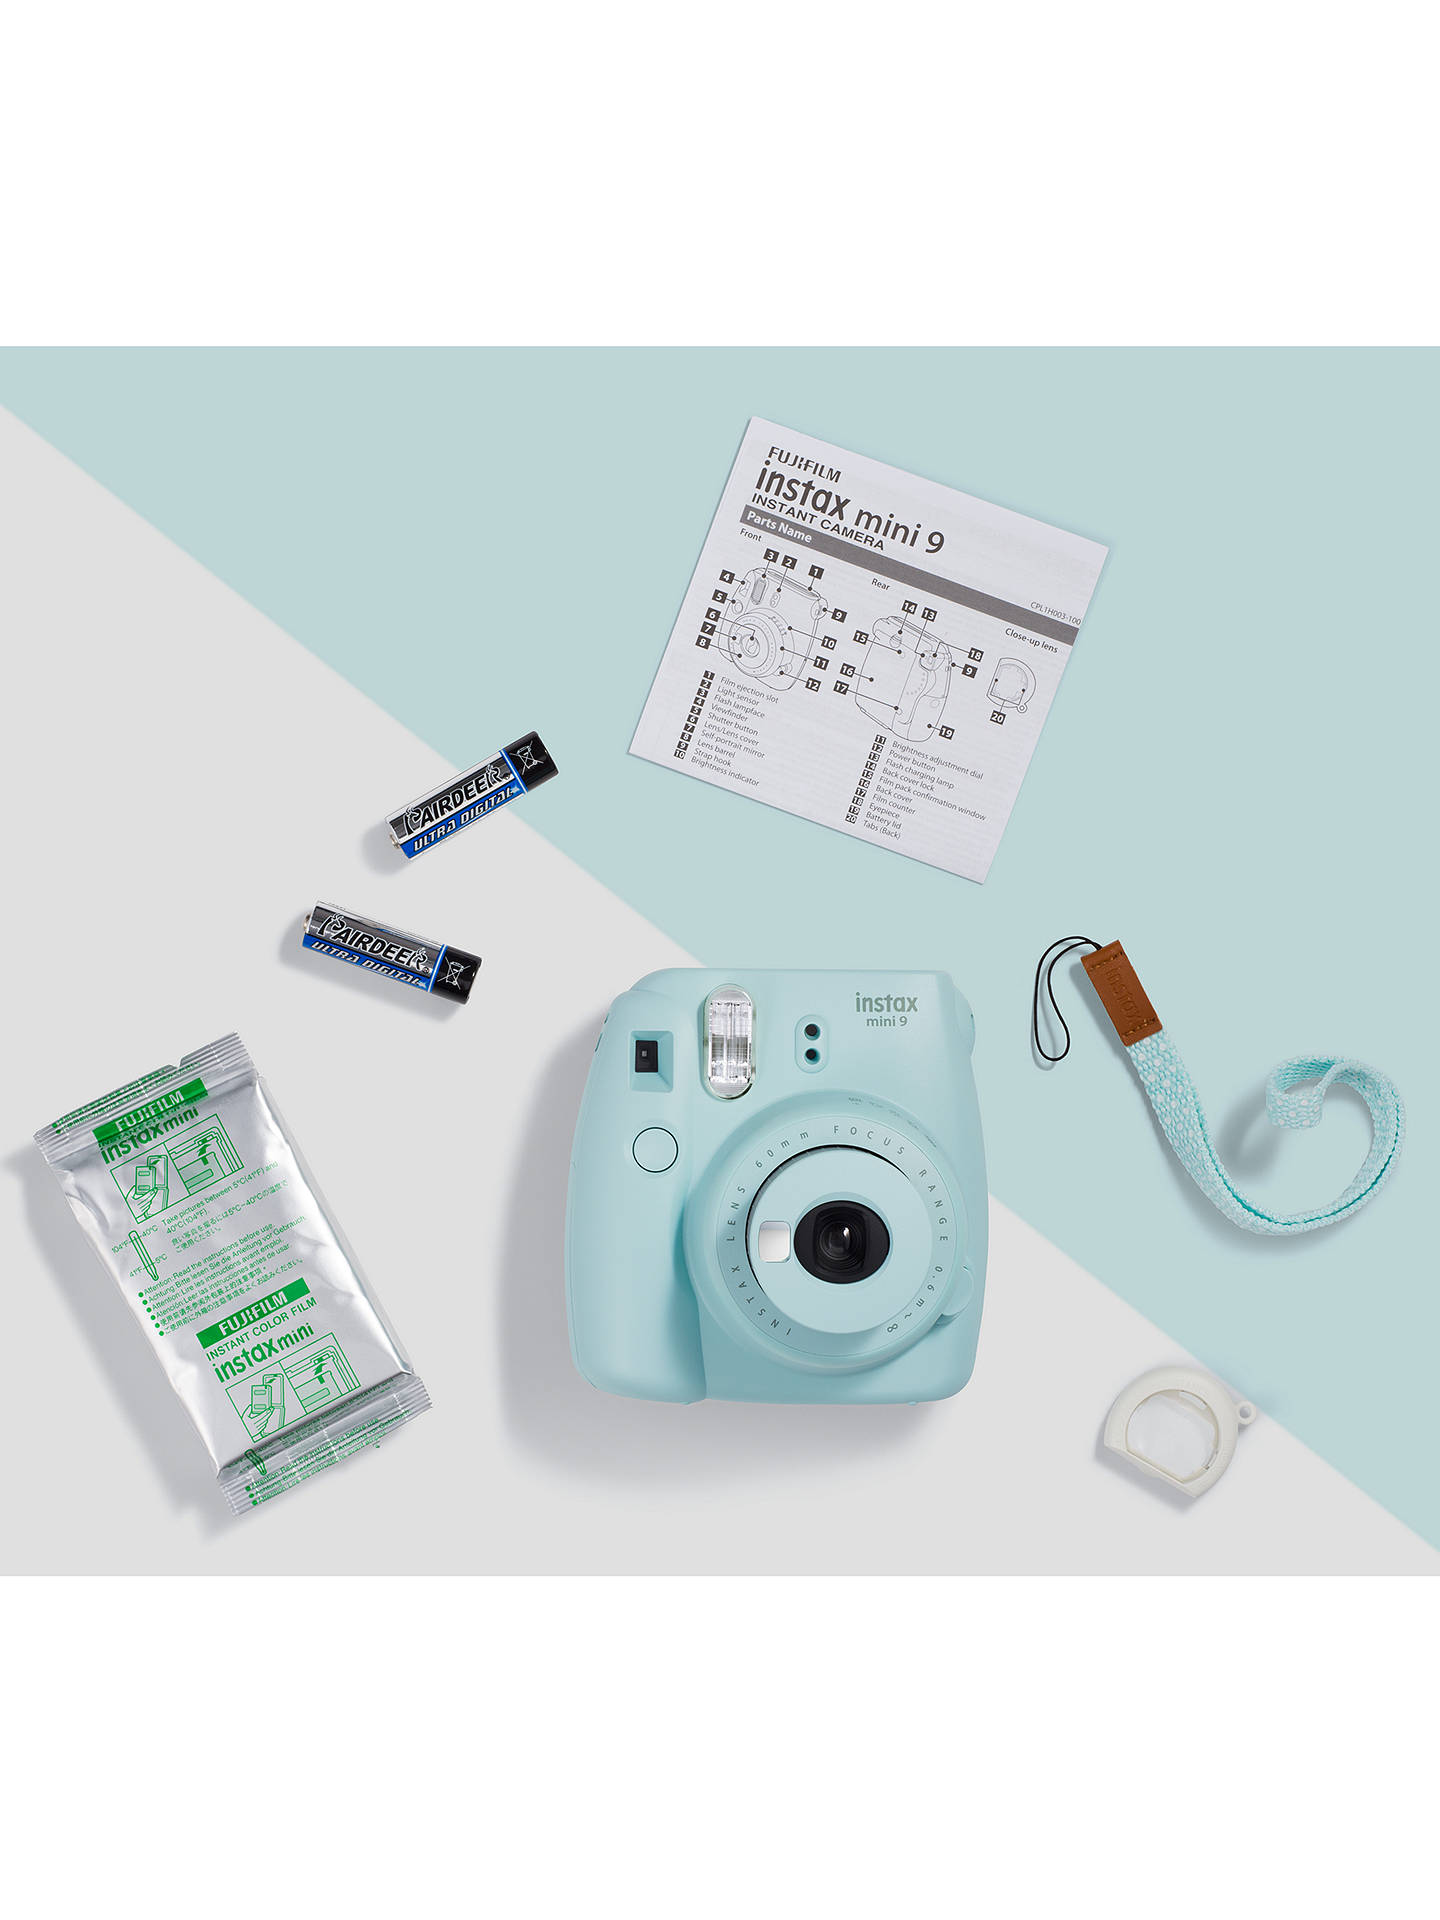 Buy Fujifilm Instax Mini 9 Instant Camera with 10 Shots of Film, Built-In Flash & Hand Strap, Ice Blue Online at johnlewis.com